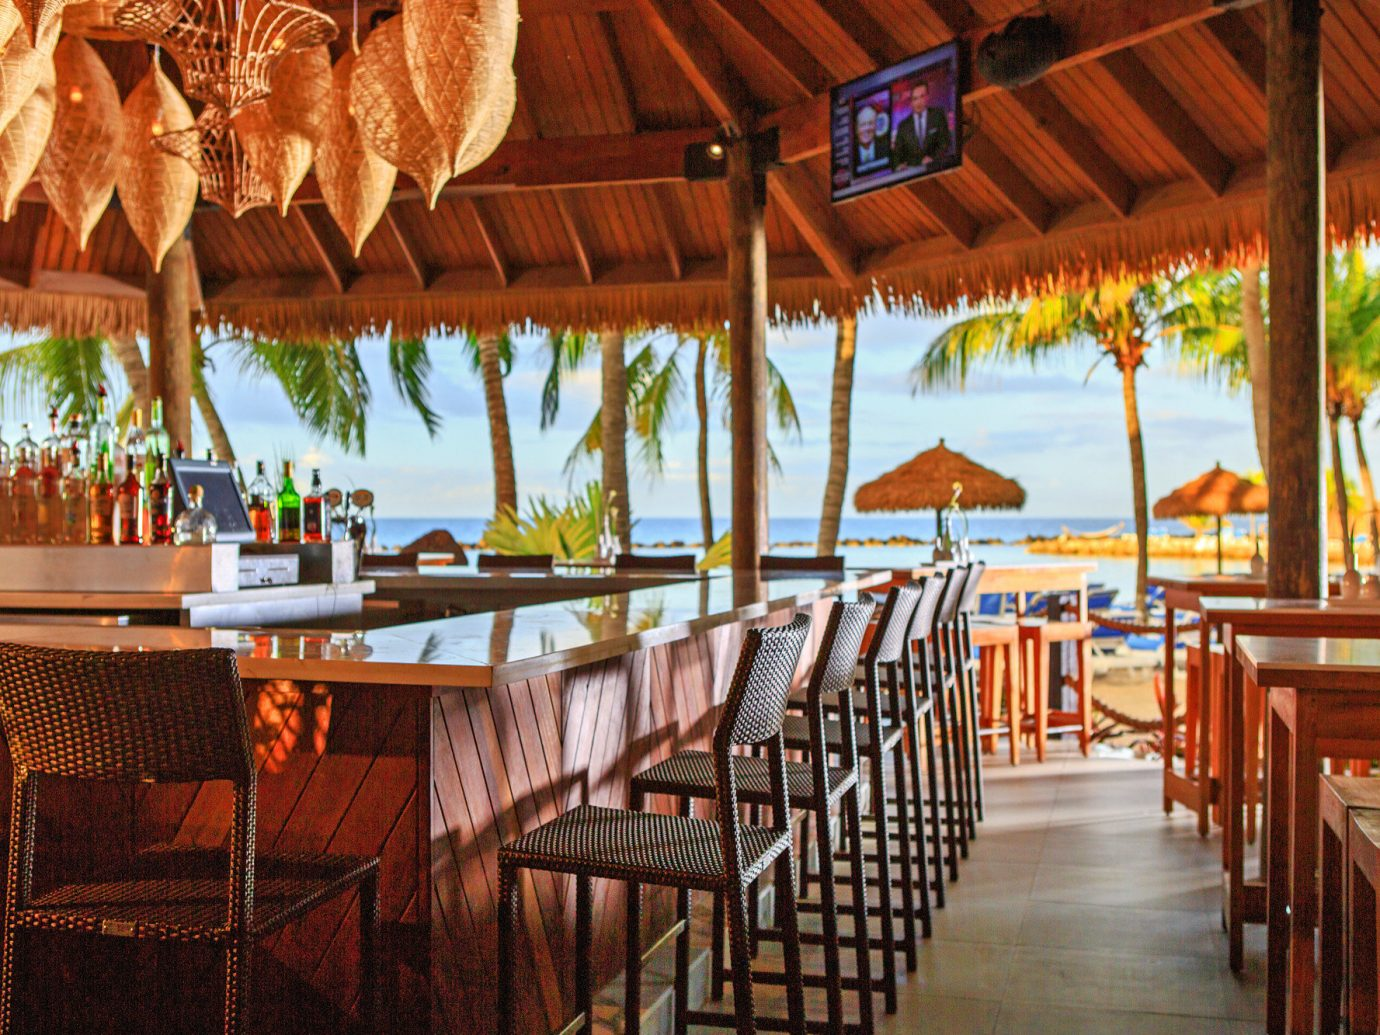 Aruba Bar Beachfront Budget caribbean Dining Drink Eat Hotels Party table chair floor Resort restaurant wooden vacation meal estate hacienda eco hotel area set furniture several dining room dining table